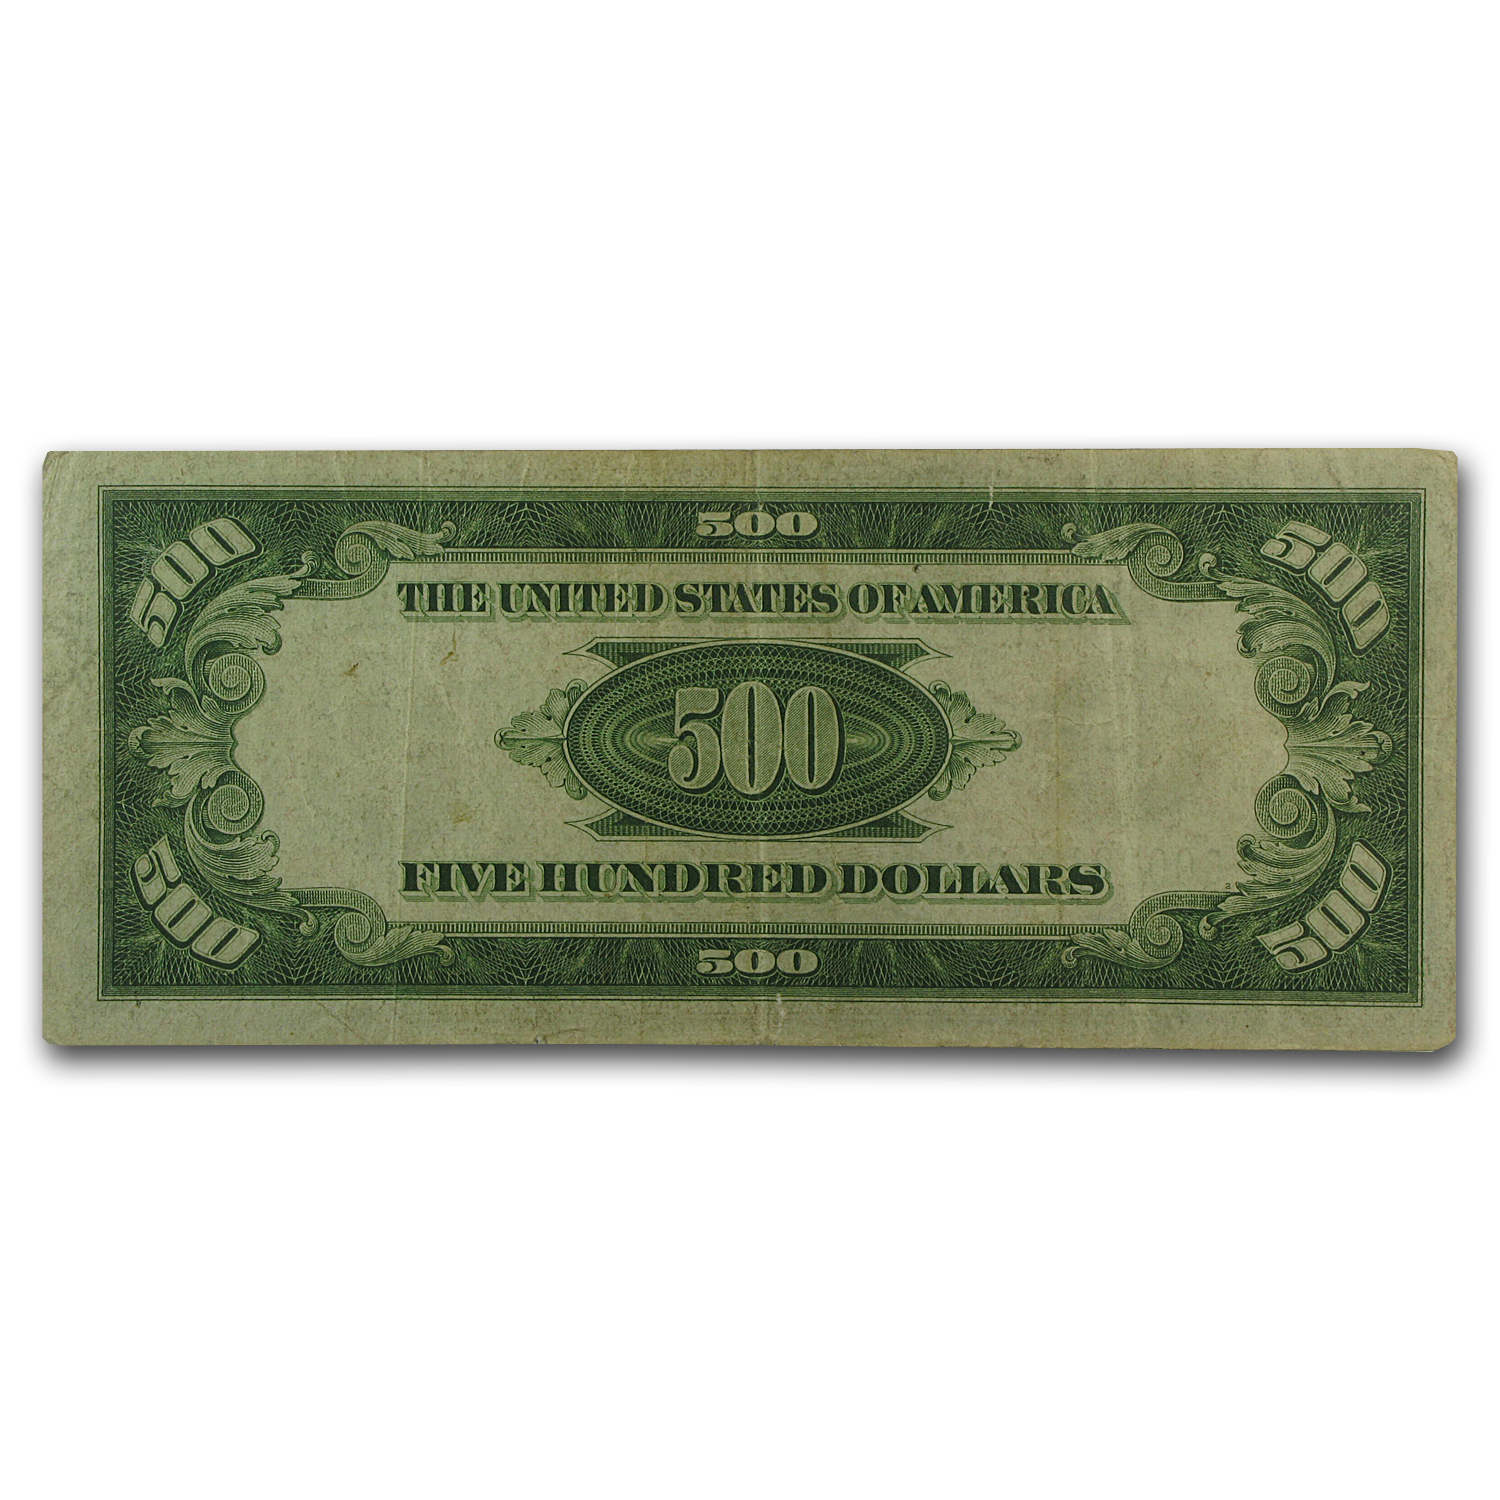 1934/34-A $500 FRN Fine or Better